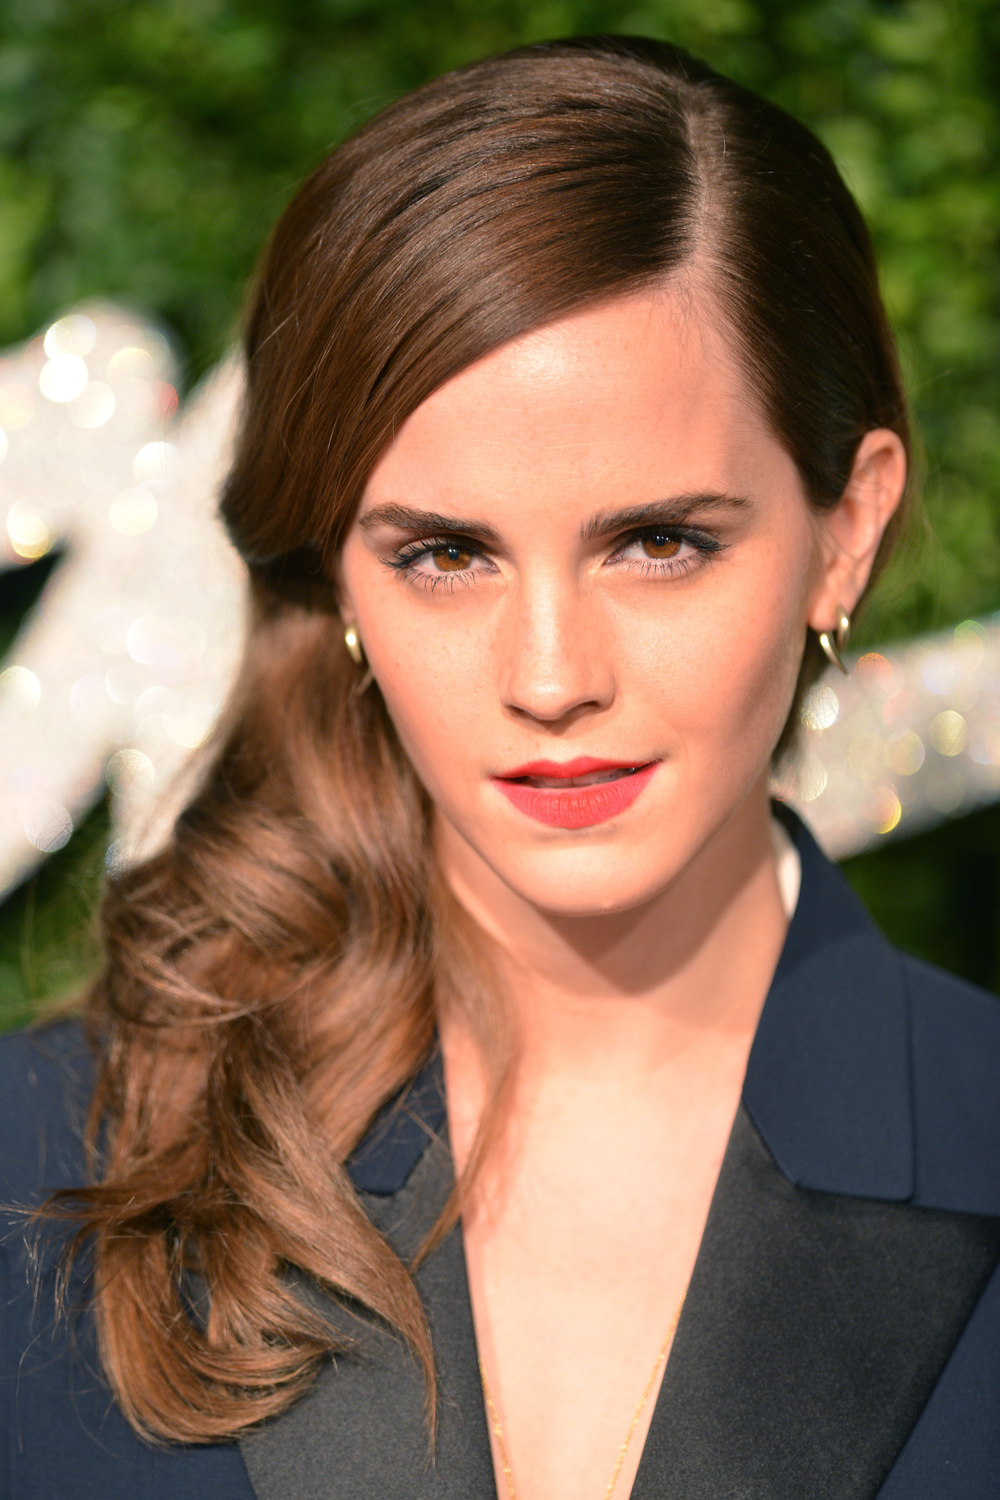 "<a href=""http://www.totallyemmawatson.com/gallery/events/2014/british-fashion-awards"">British Fashion Awards</a>"